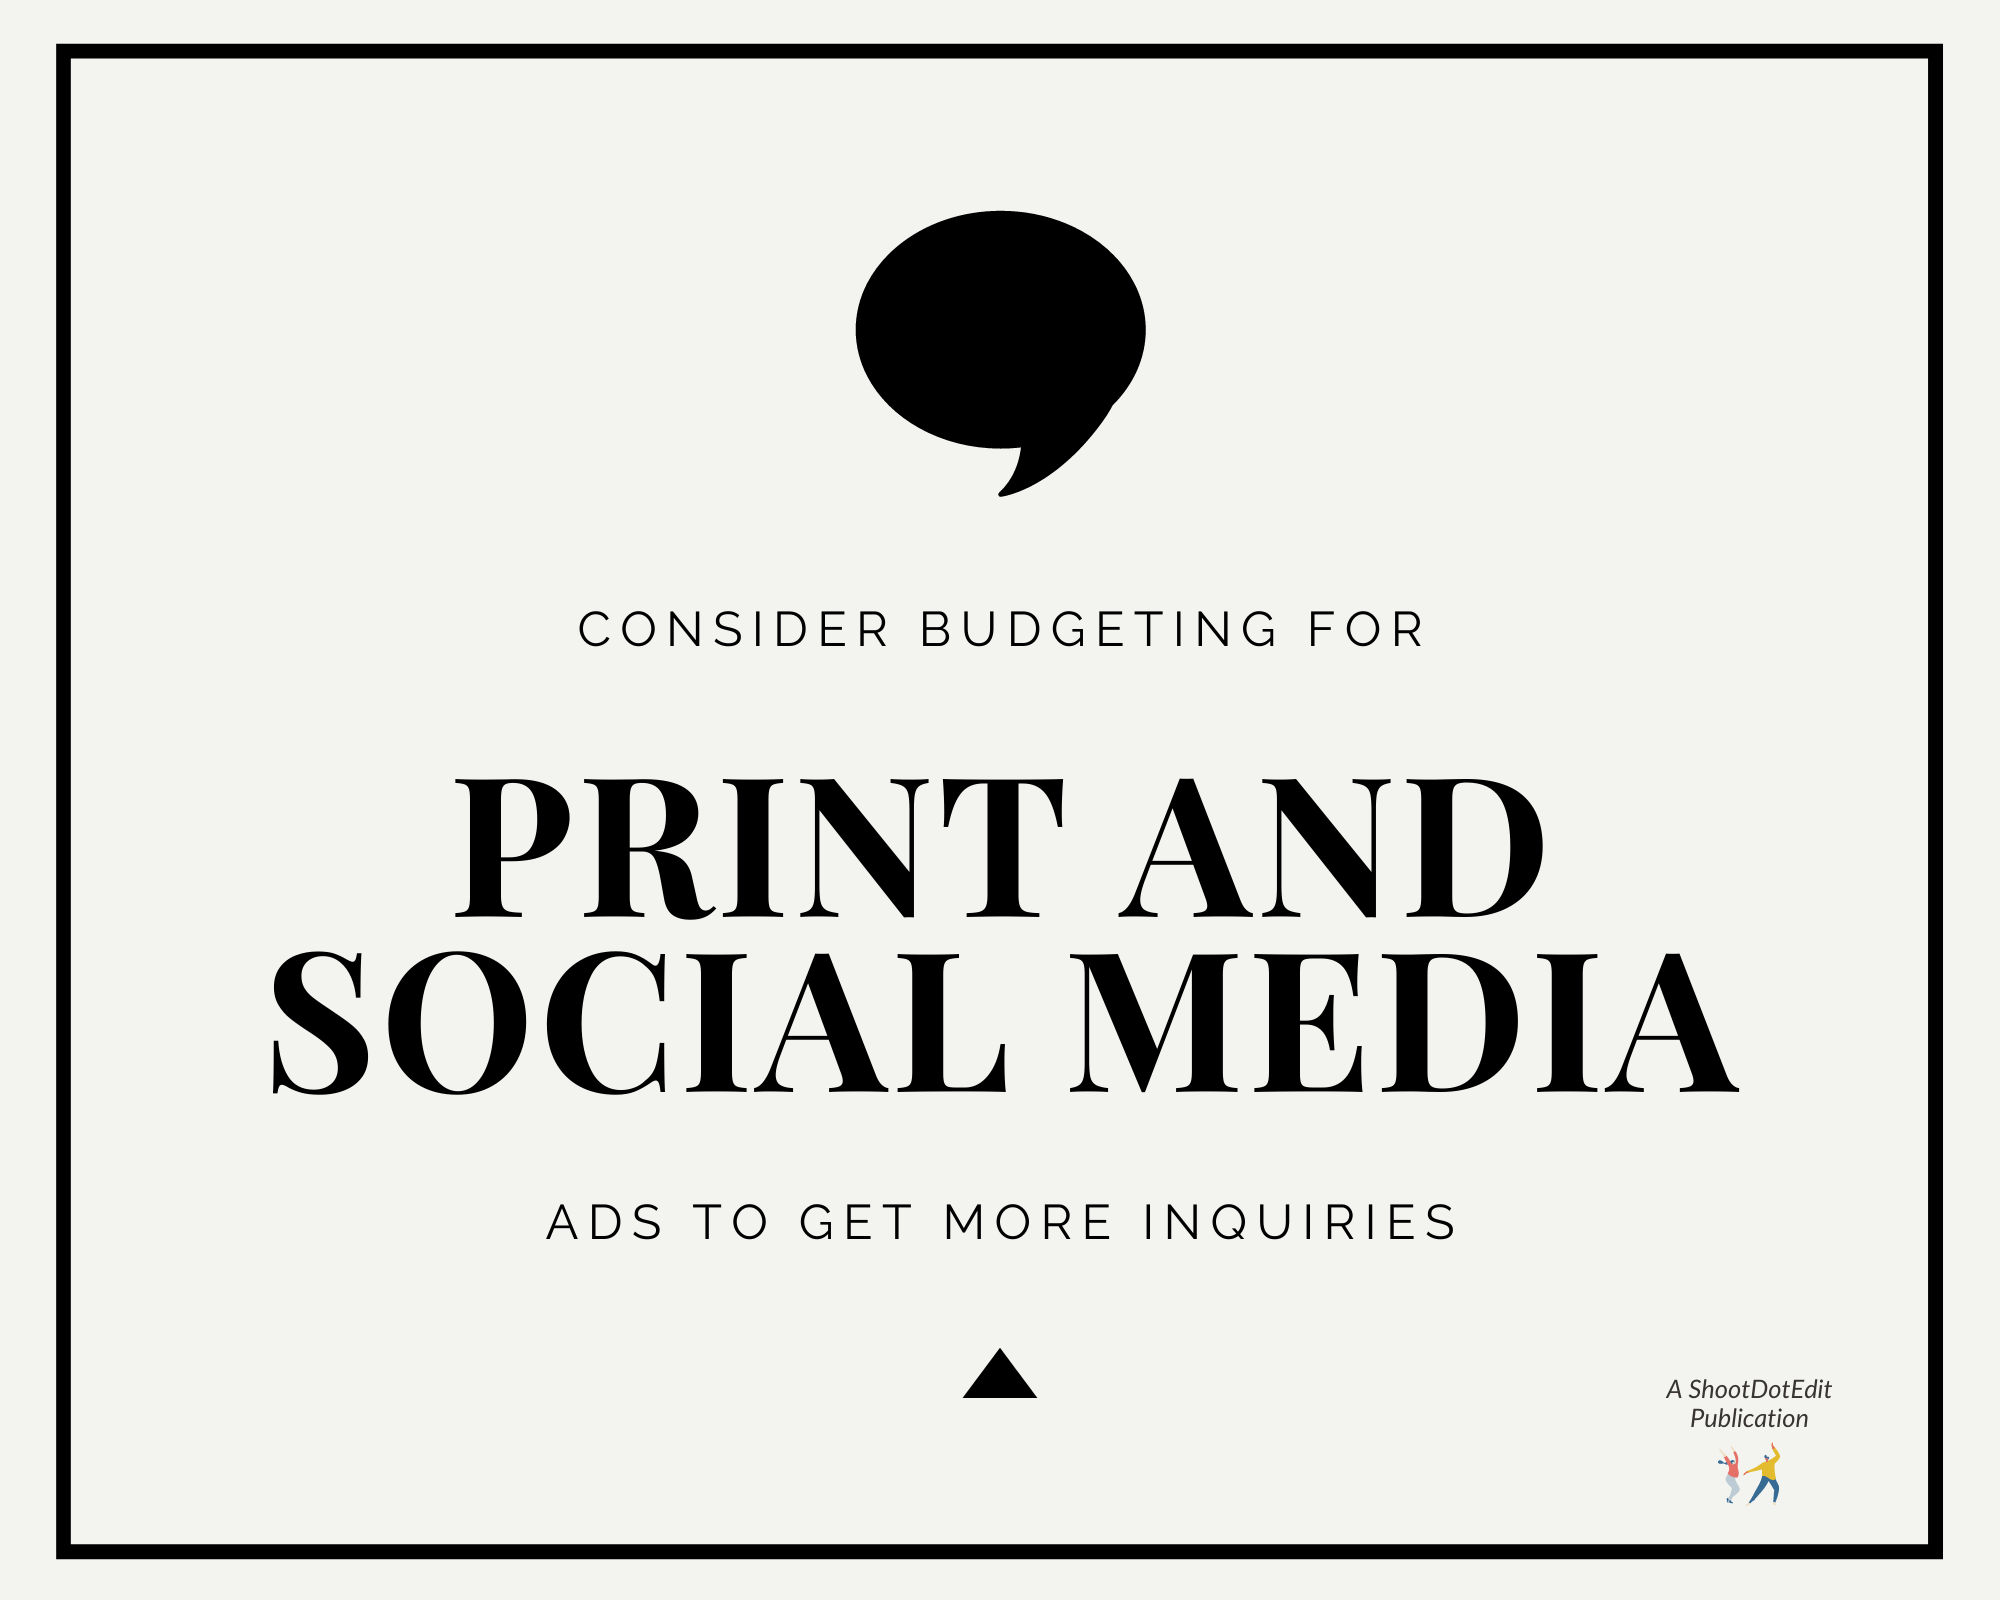 Infographic stating consider budgeting for print and social media ads to get more inquiries